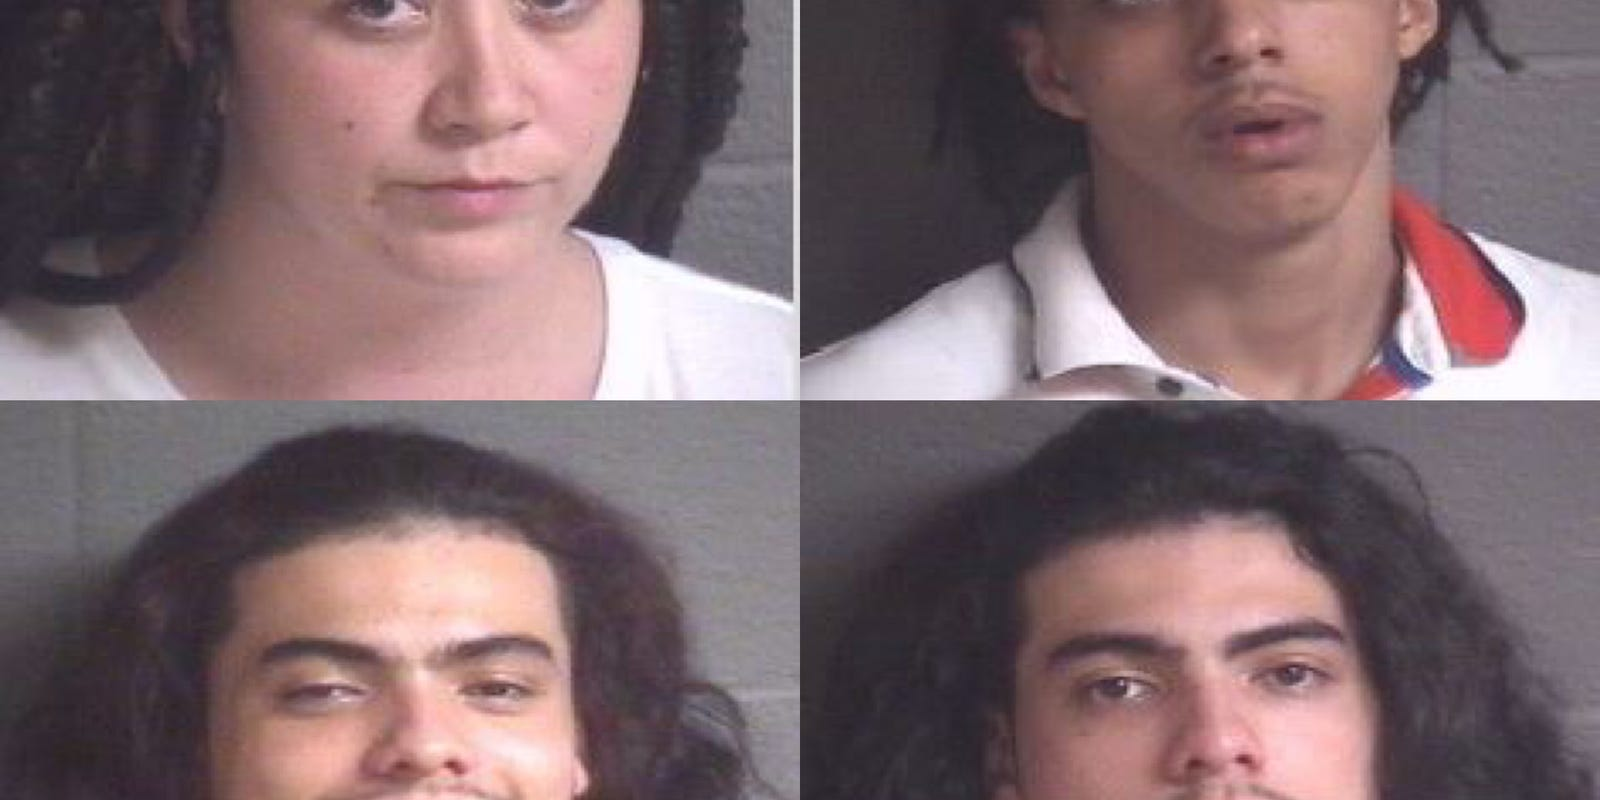 Angela Is The Fireworks Woman asheville police arrest 4 in alleged fireworks assault on